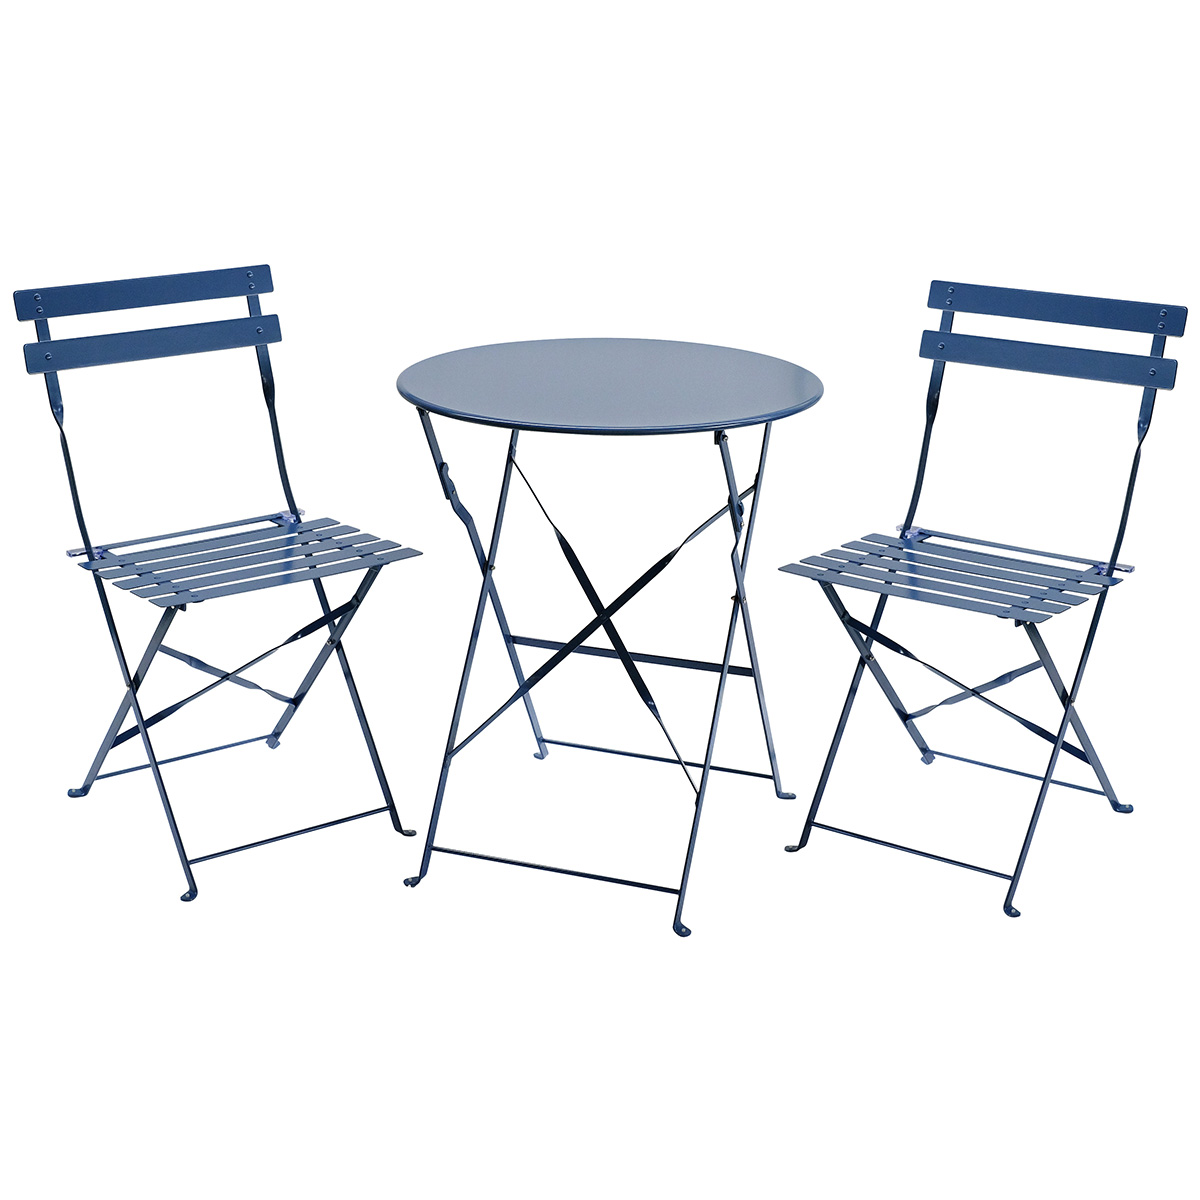 table 2 chairs. charles-bentley-3-piece-metal-bistro-set-garden- table 2 chairs